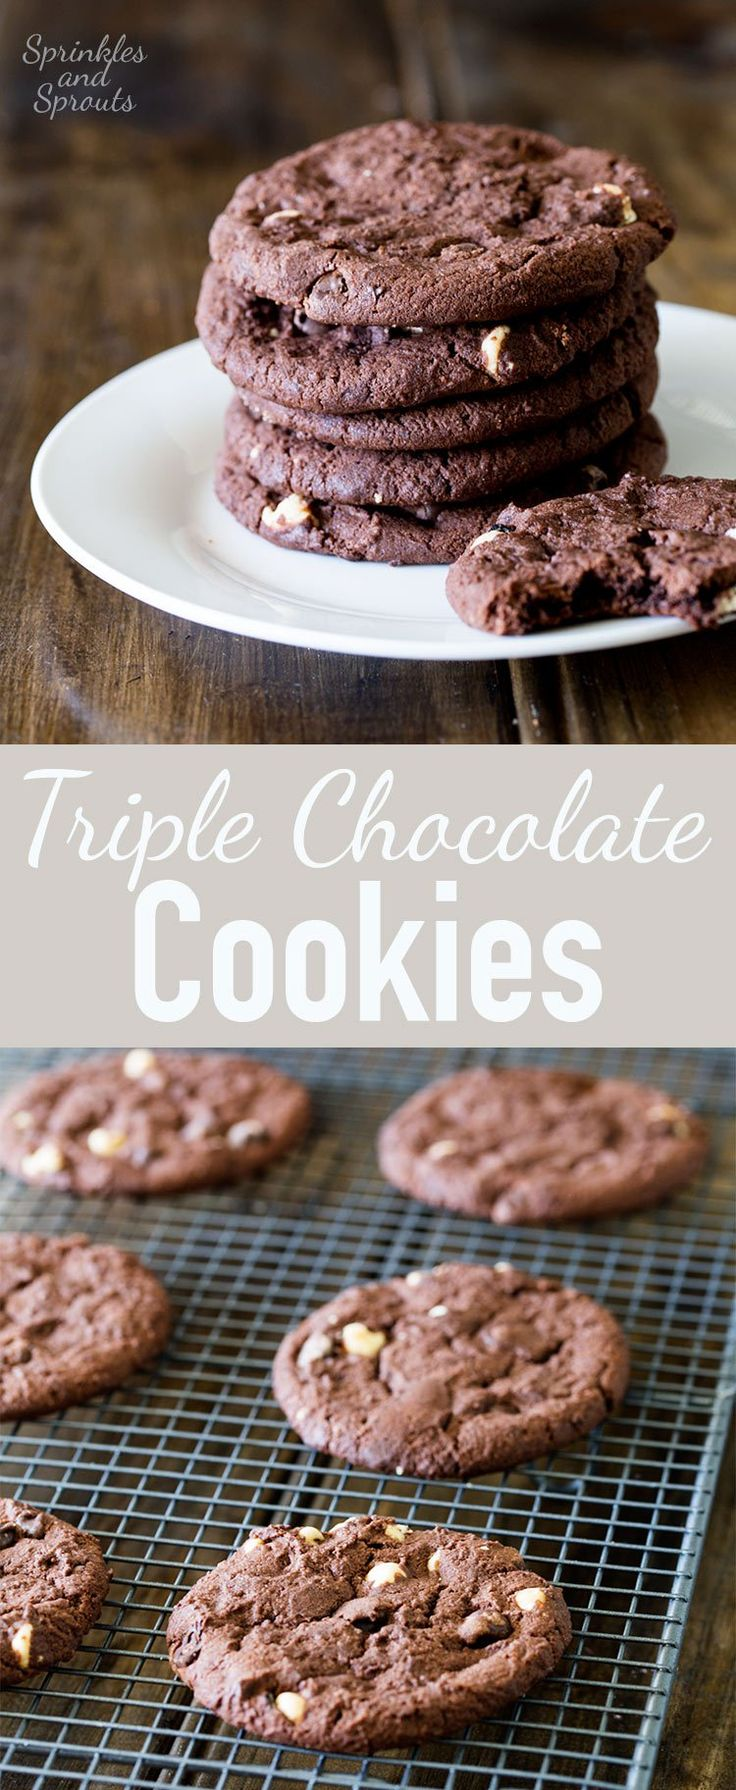 These subway style chocolate chip cookies are super chocolaty, super rich, super delicious and just super wonderful. They are beautifully soft, with a slight crisp edge, gooey in the middle and total worth every calorie!!!